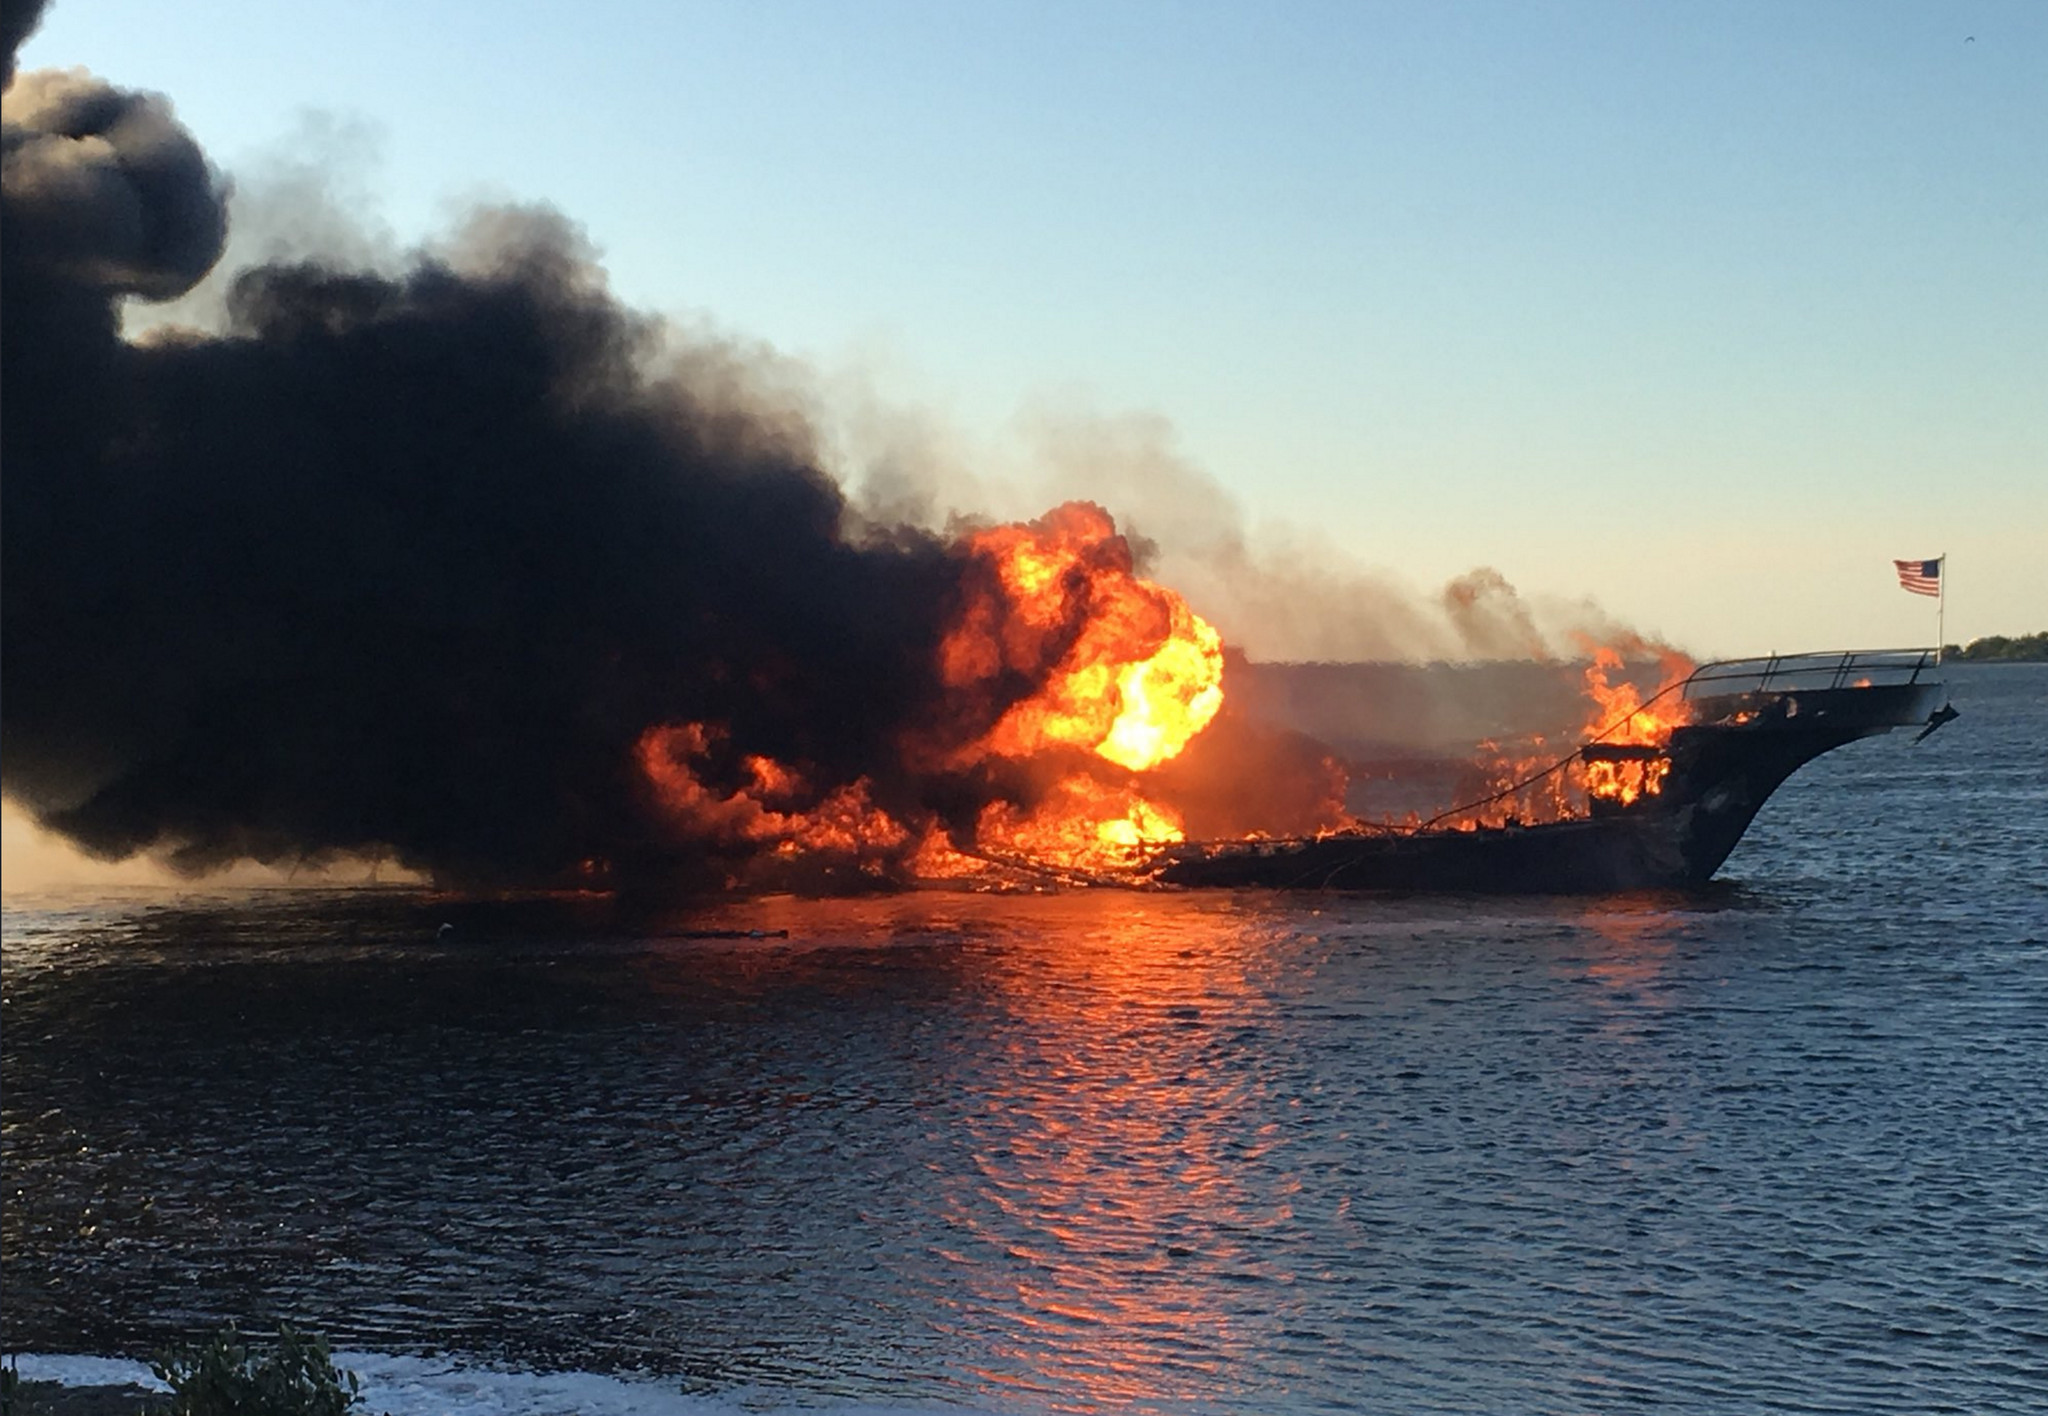 Florida casino shuttle boat engulfed by flames, all 50 passengers safely escape